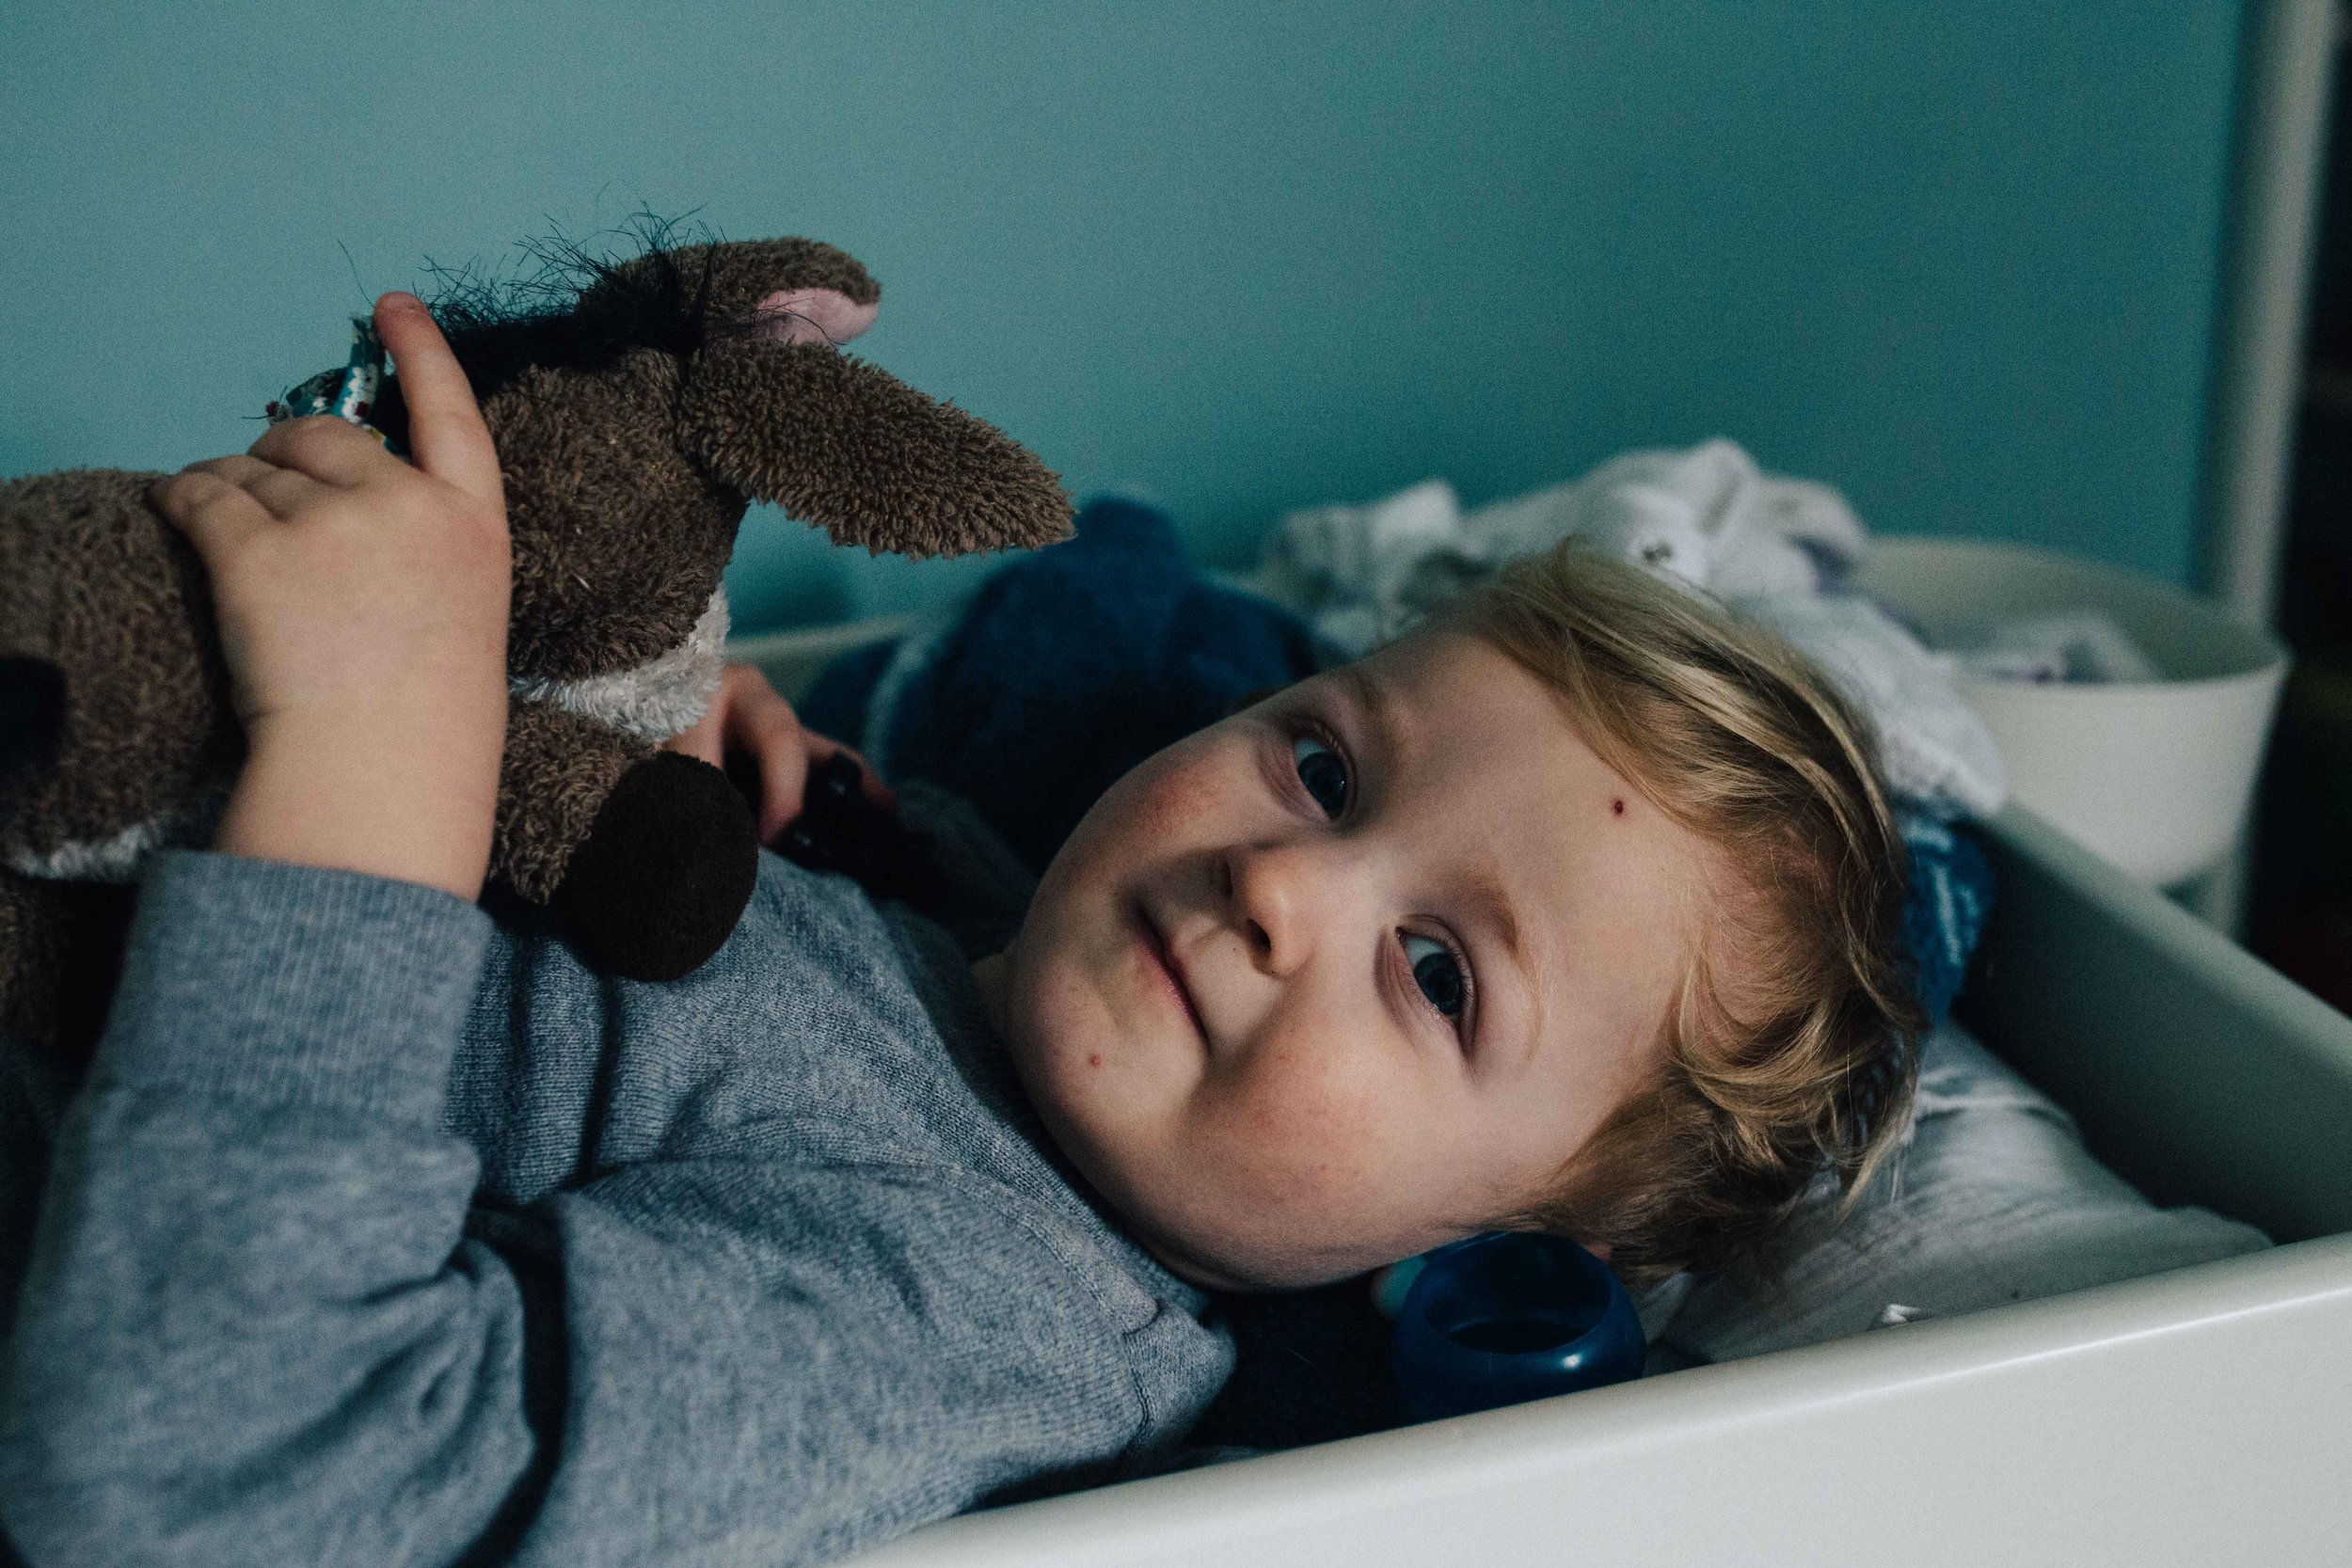 Little boy looking at camera and holding soft toy